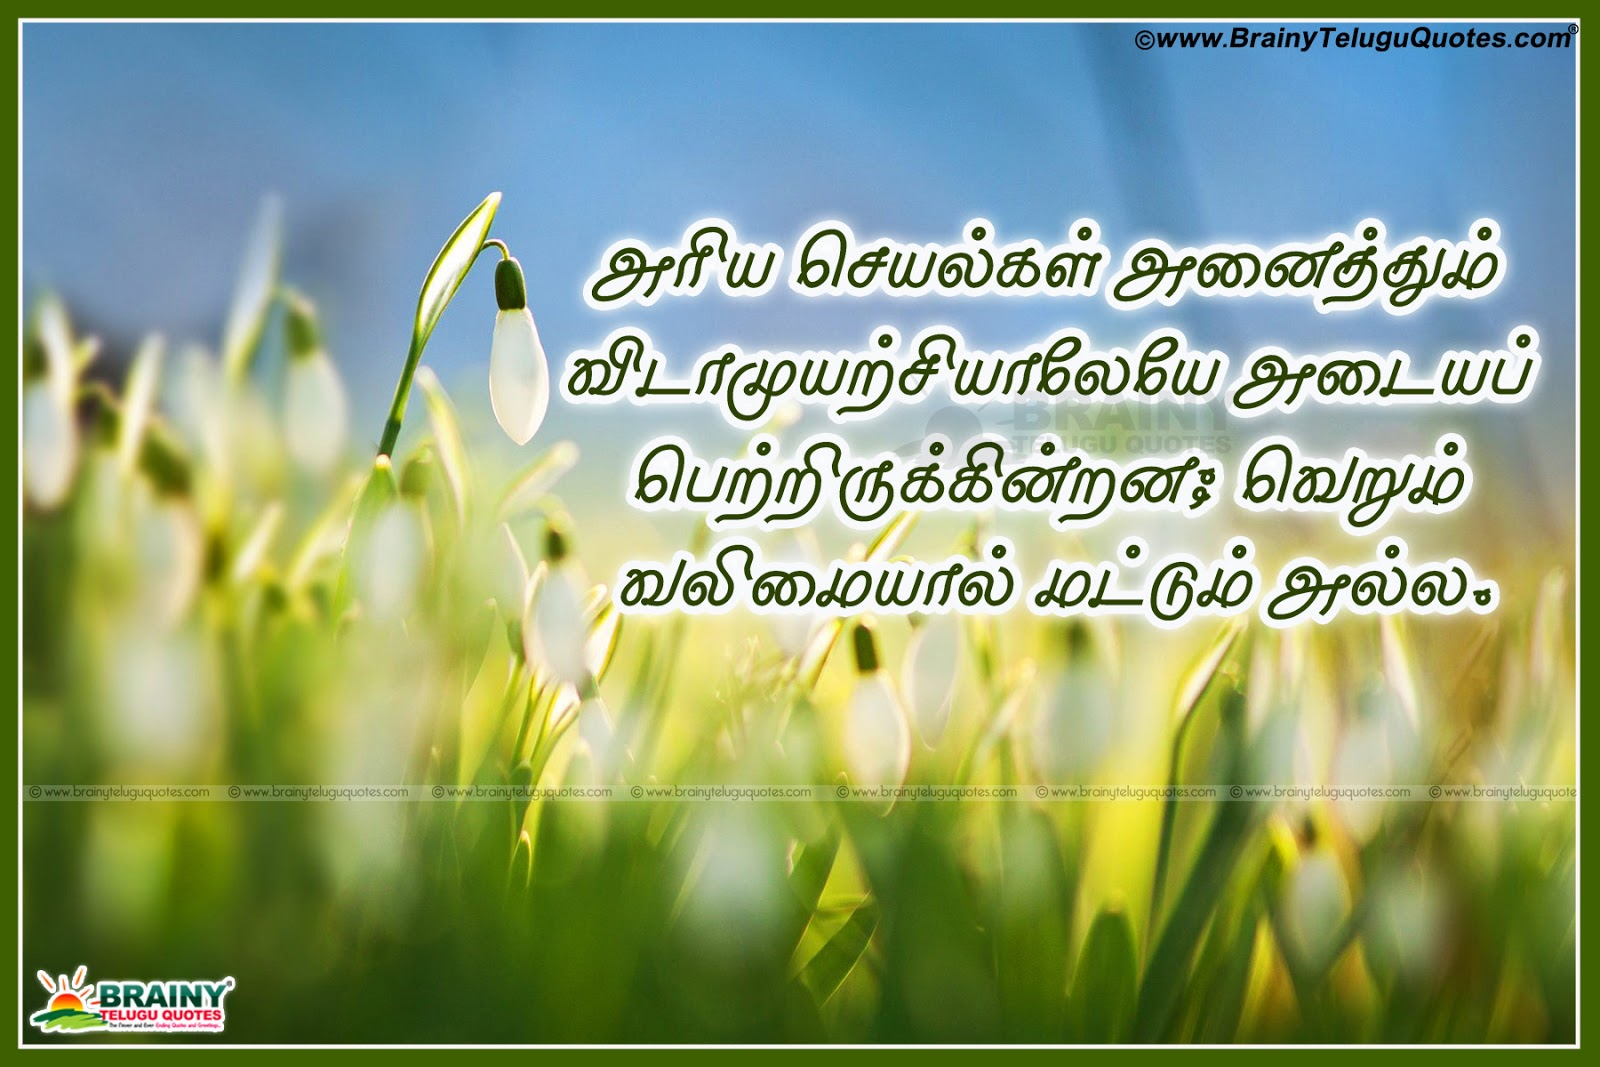 Thought Of The Day Motivational Tamil Life Motivational Thoughts Images  Brainyteluguquotes